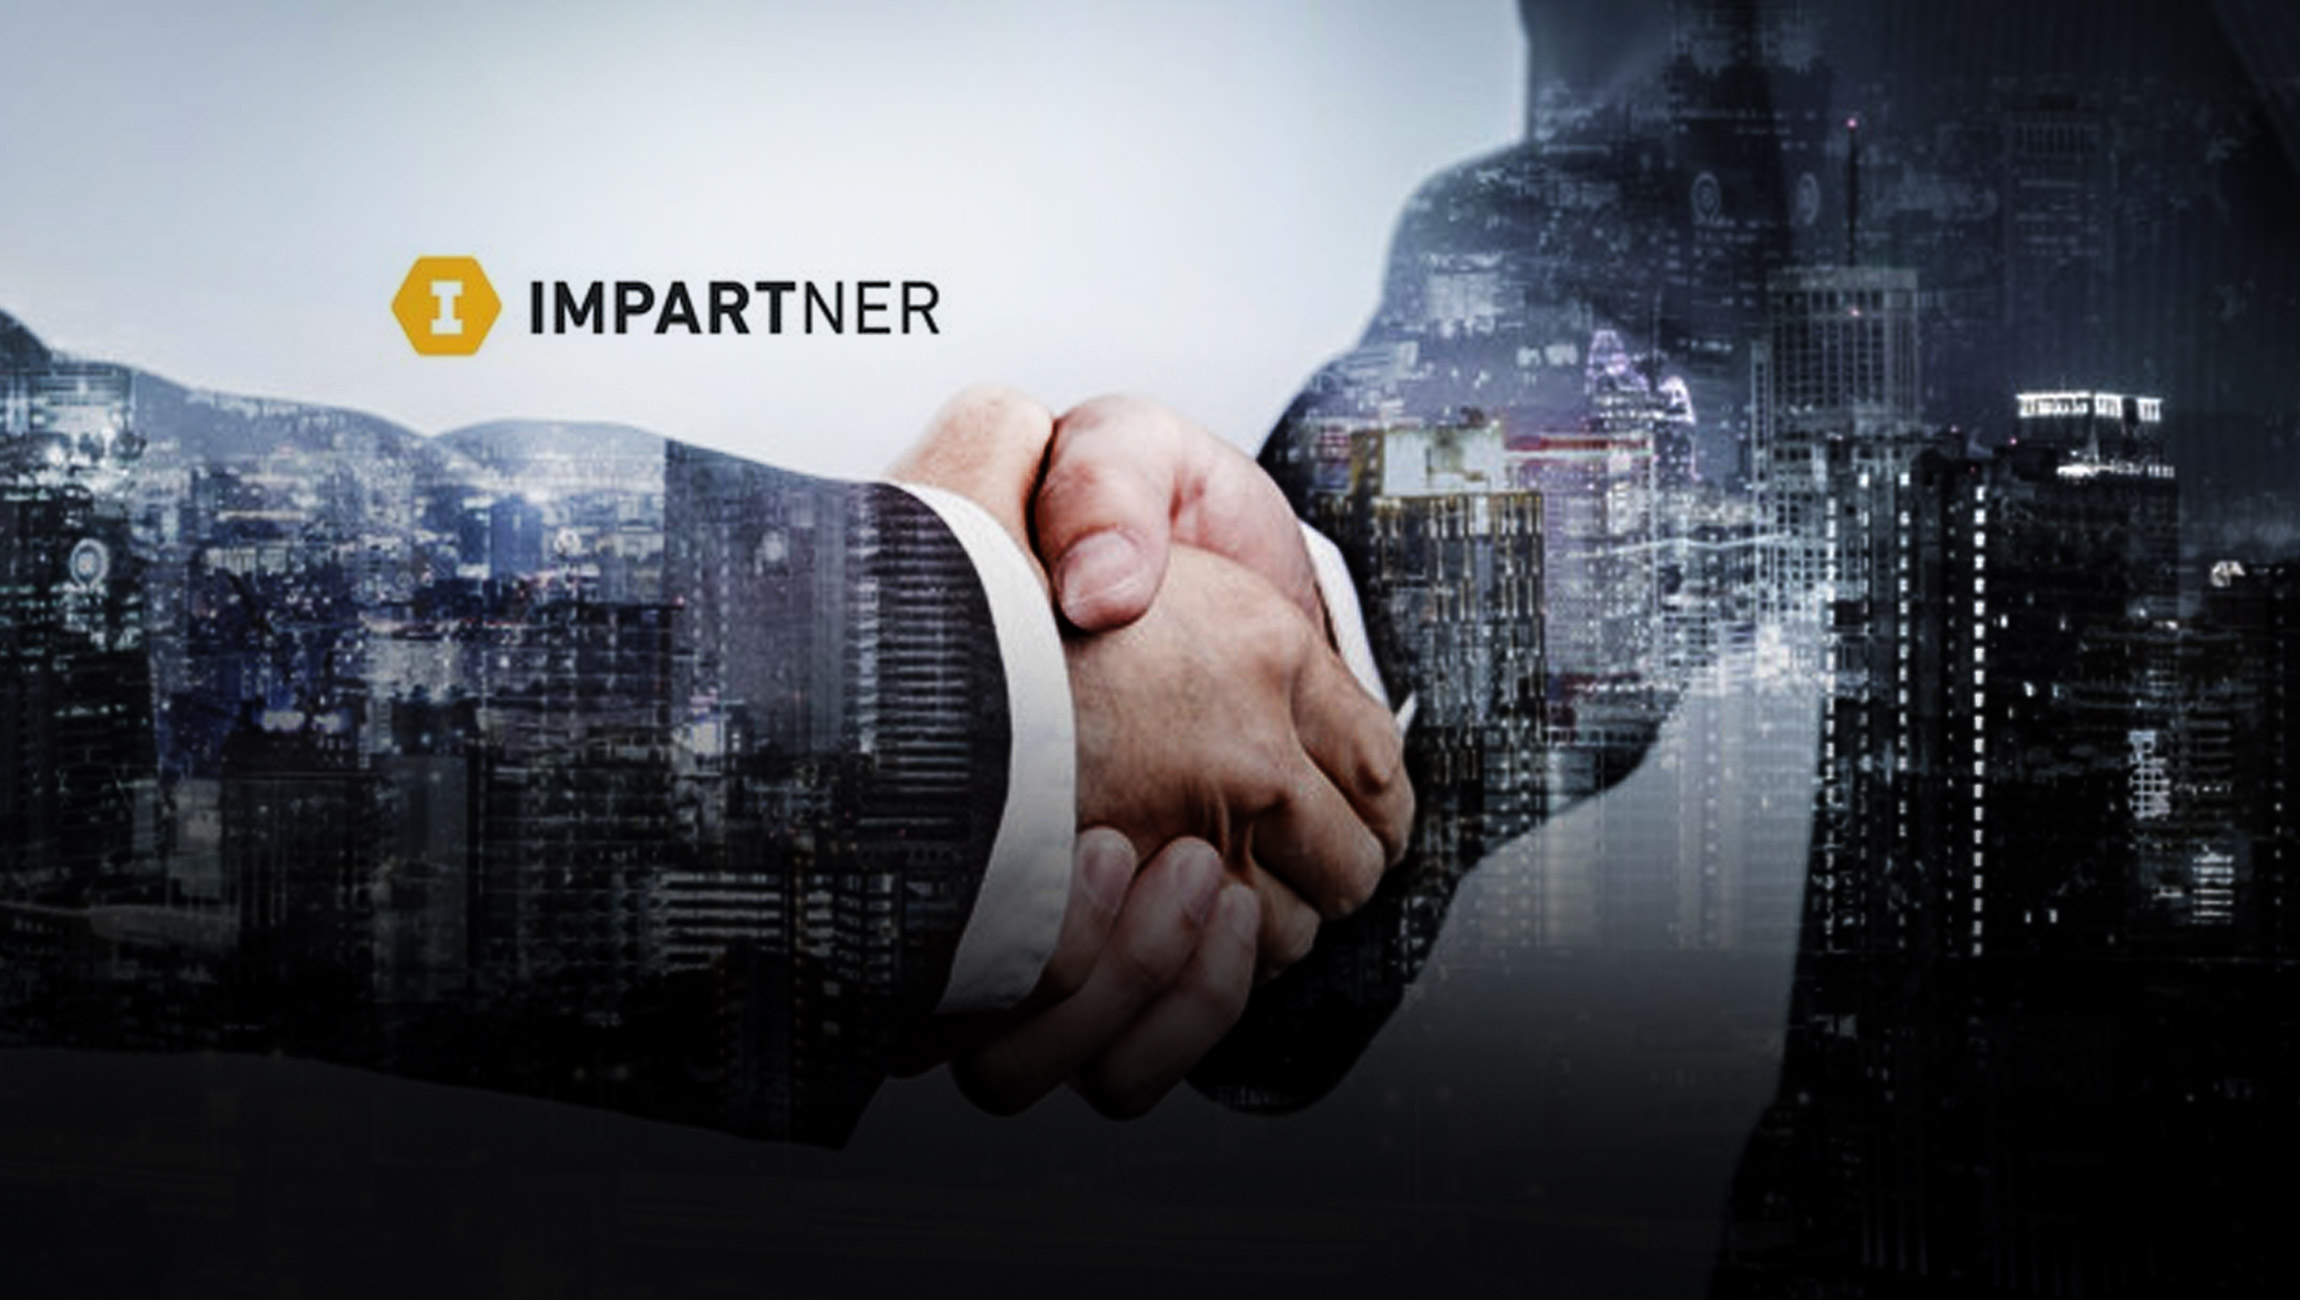 Impartner Completes Acquisition of TIE Kinetix's Channel Marketing and Demand Generation Business